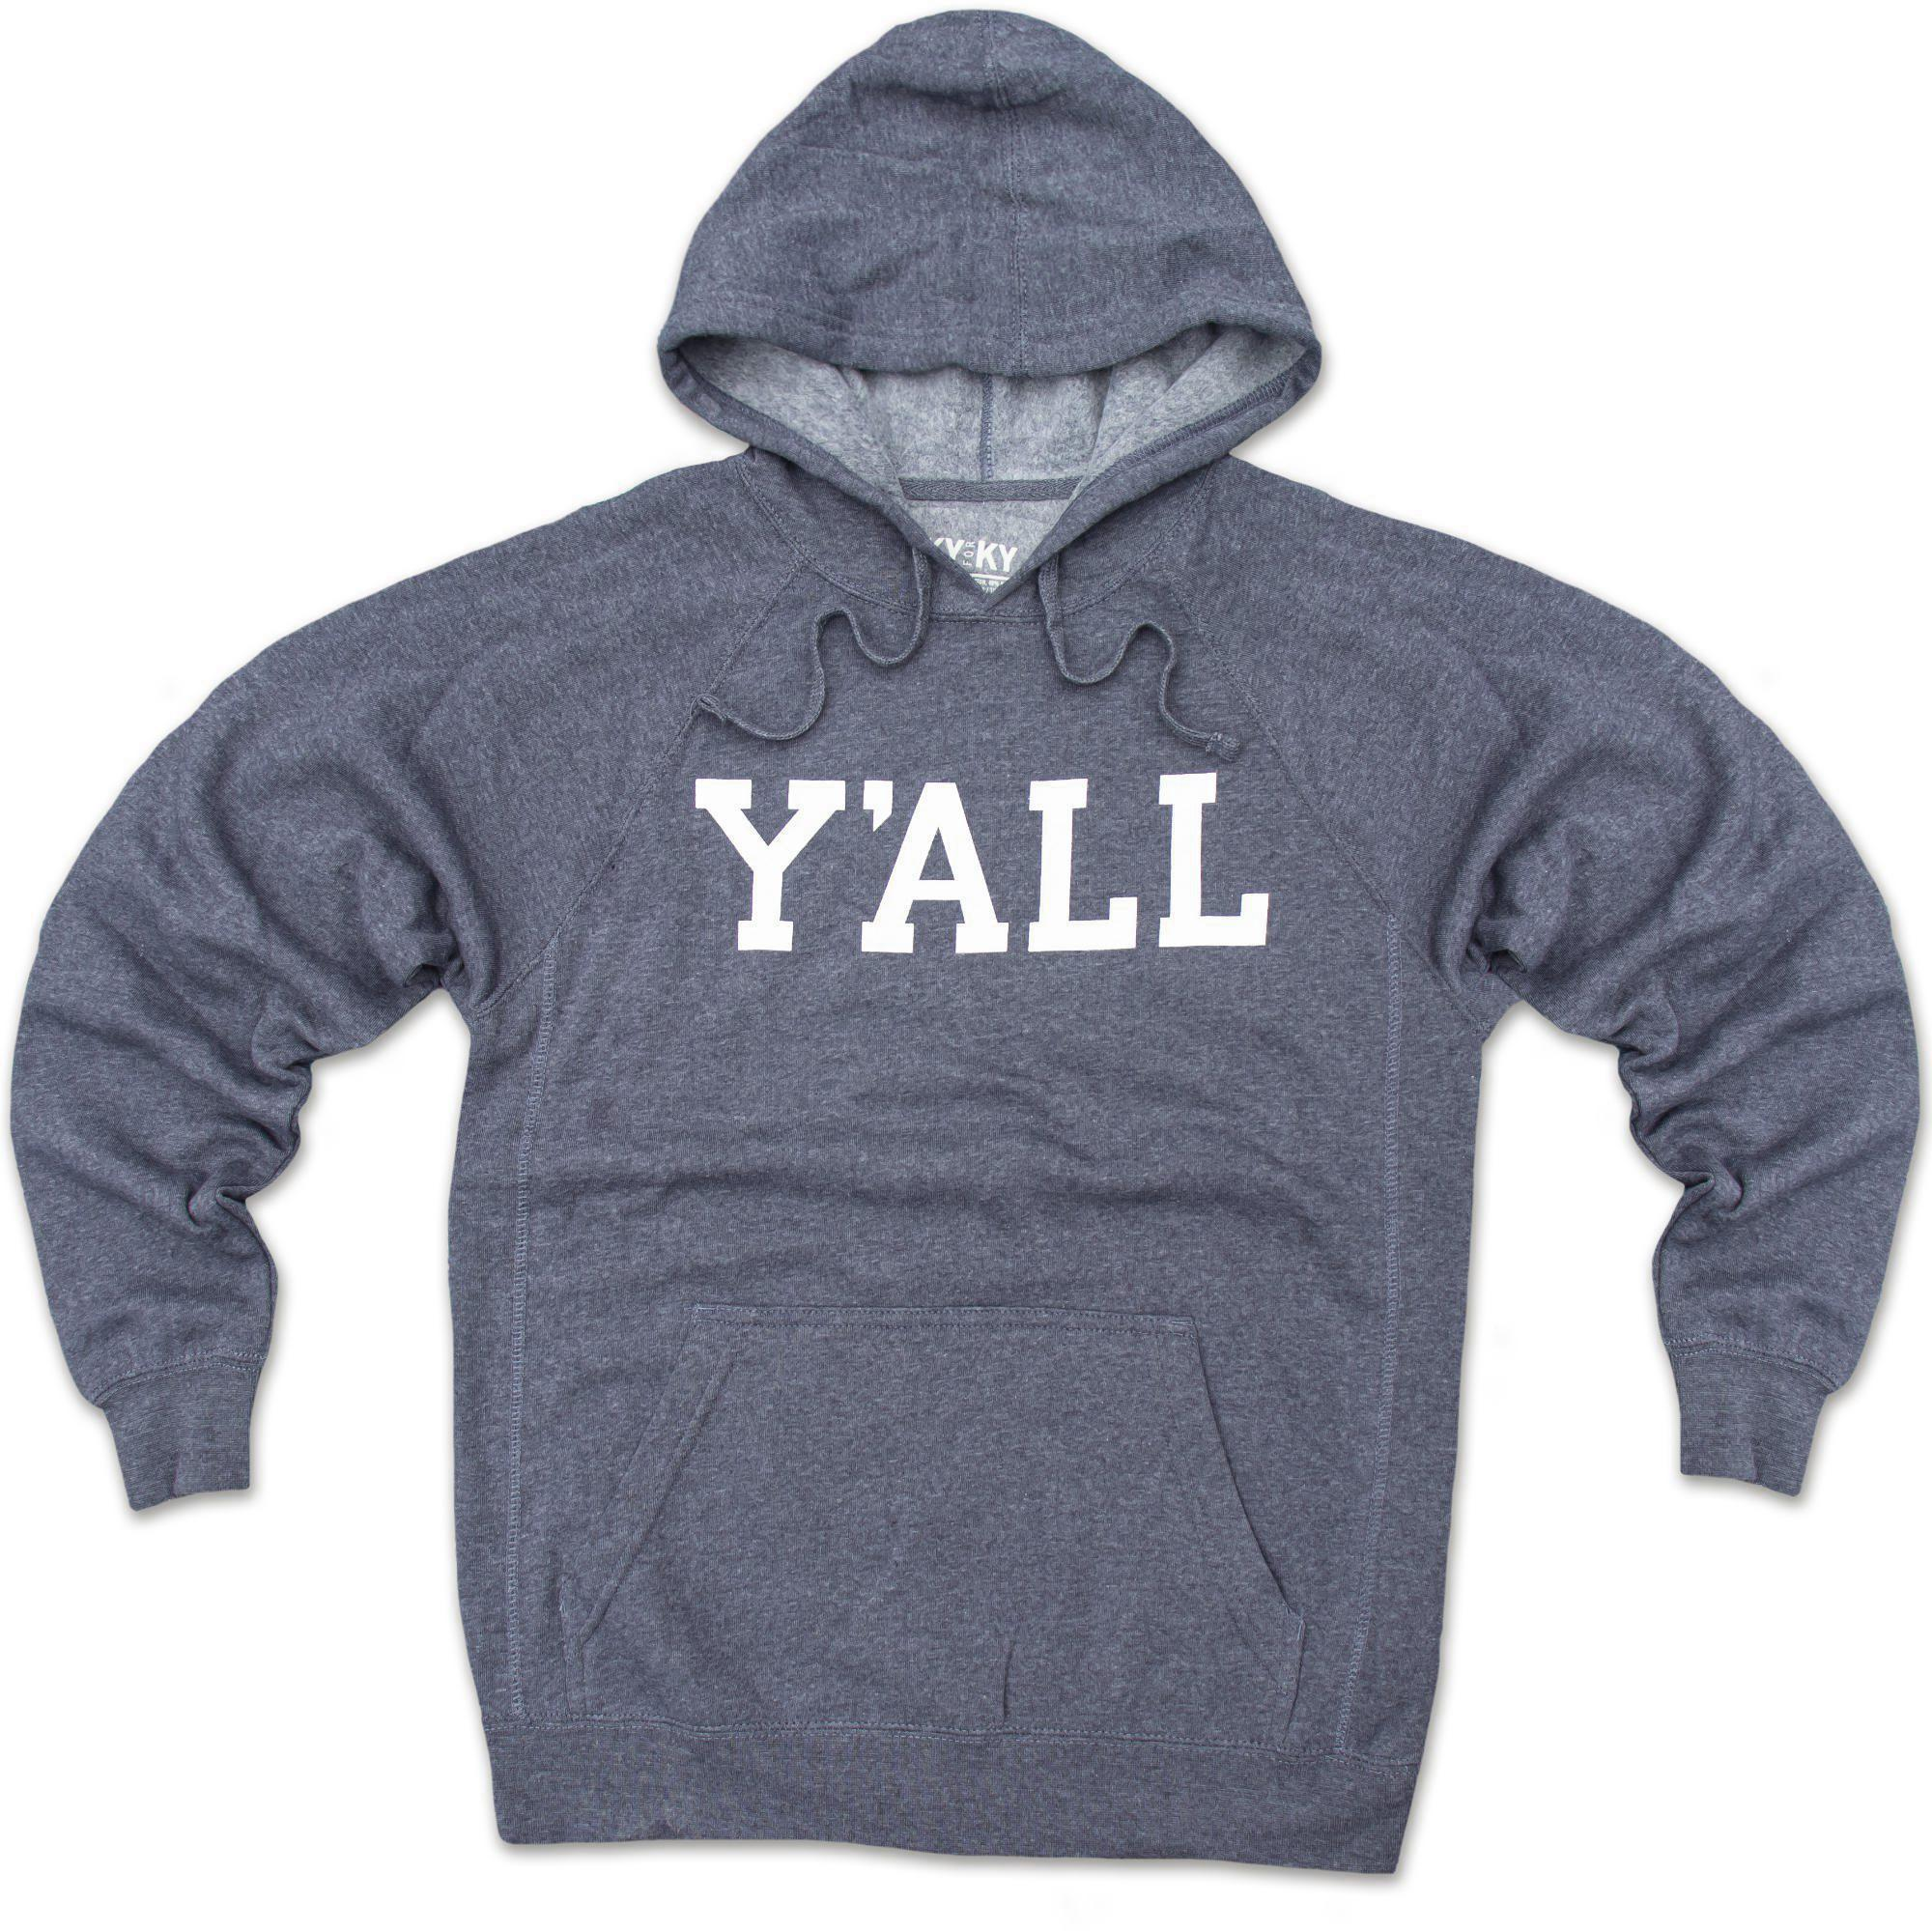 Y'ALL Hoodie (Navy)-Sweatshirt-Southern Socks